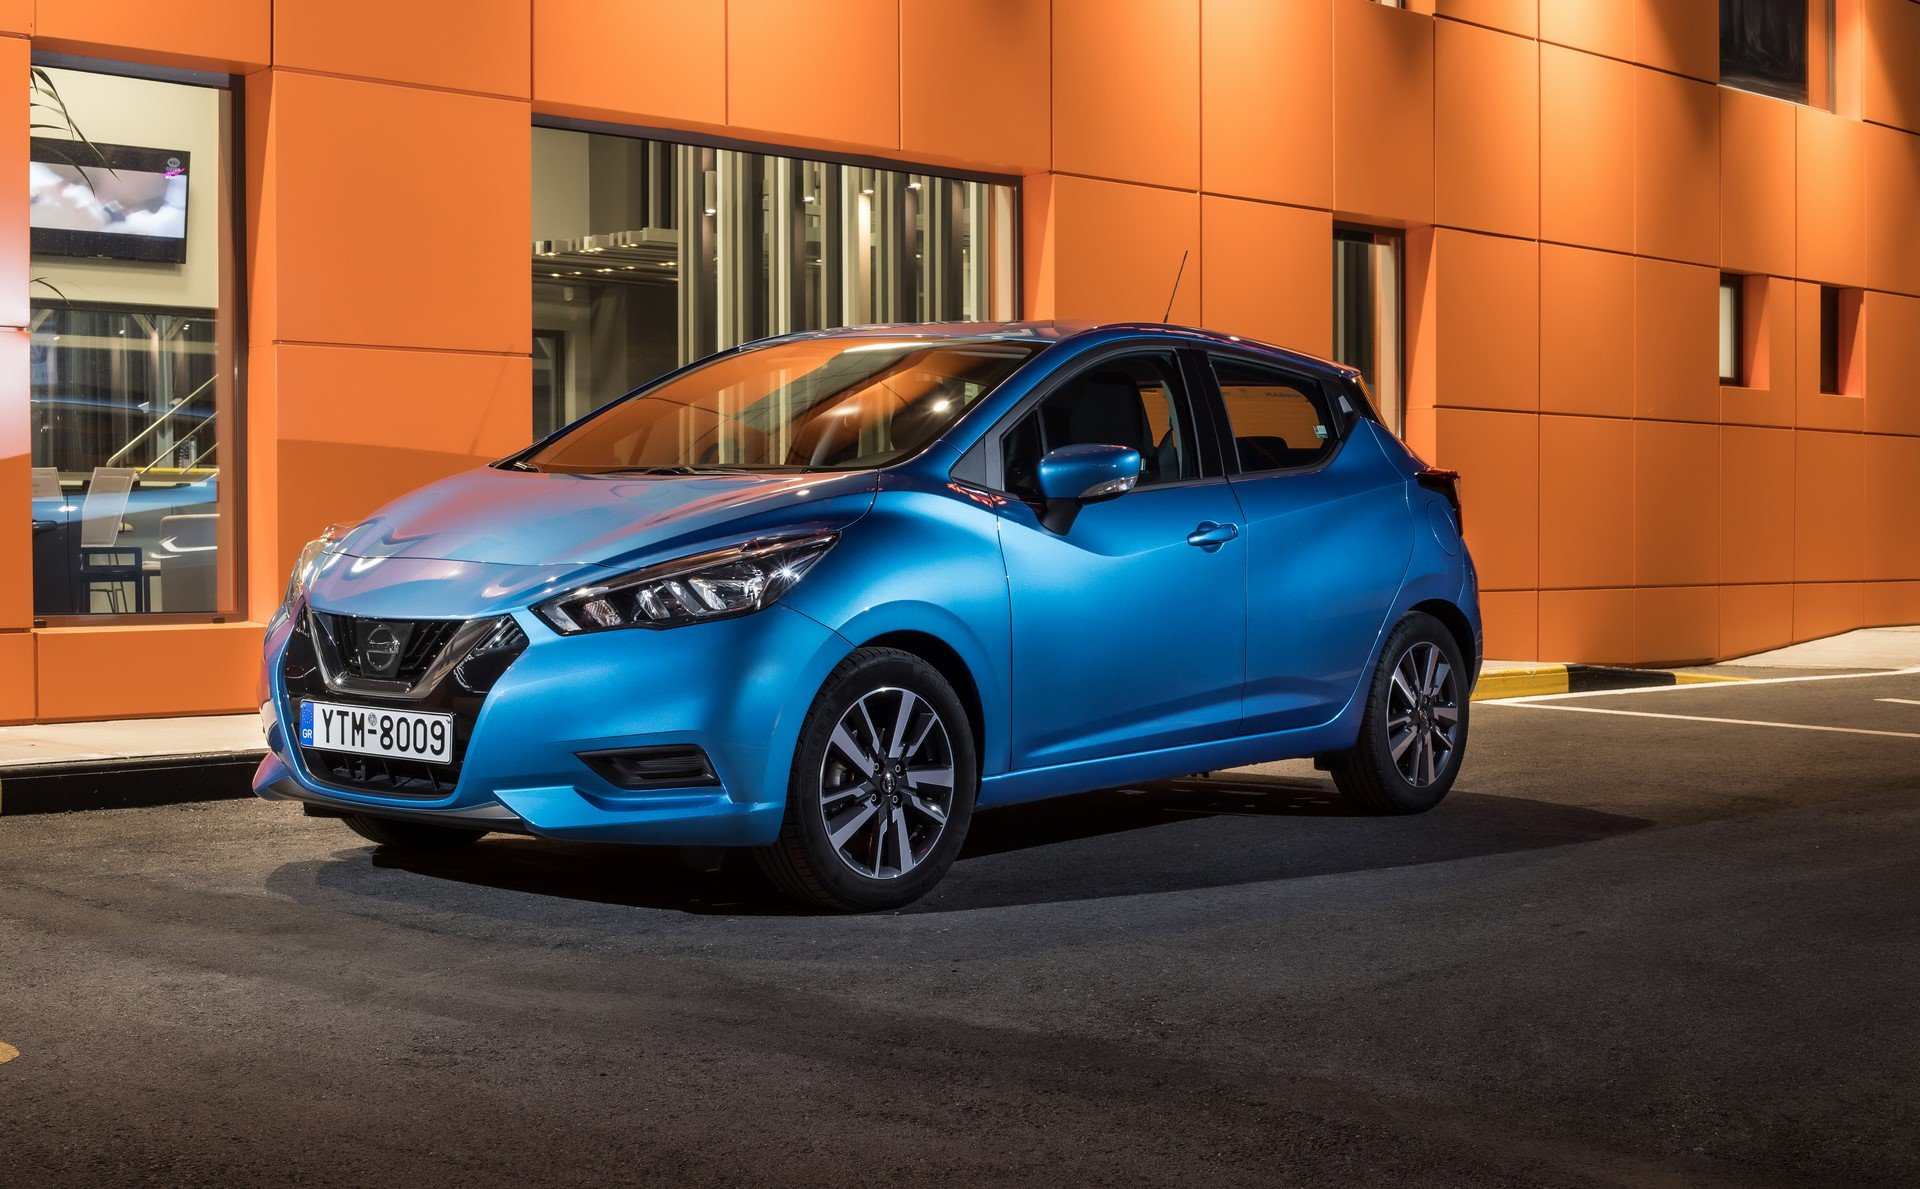 Nissan Micra 2019 Greek (1)